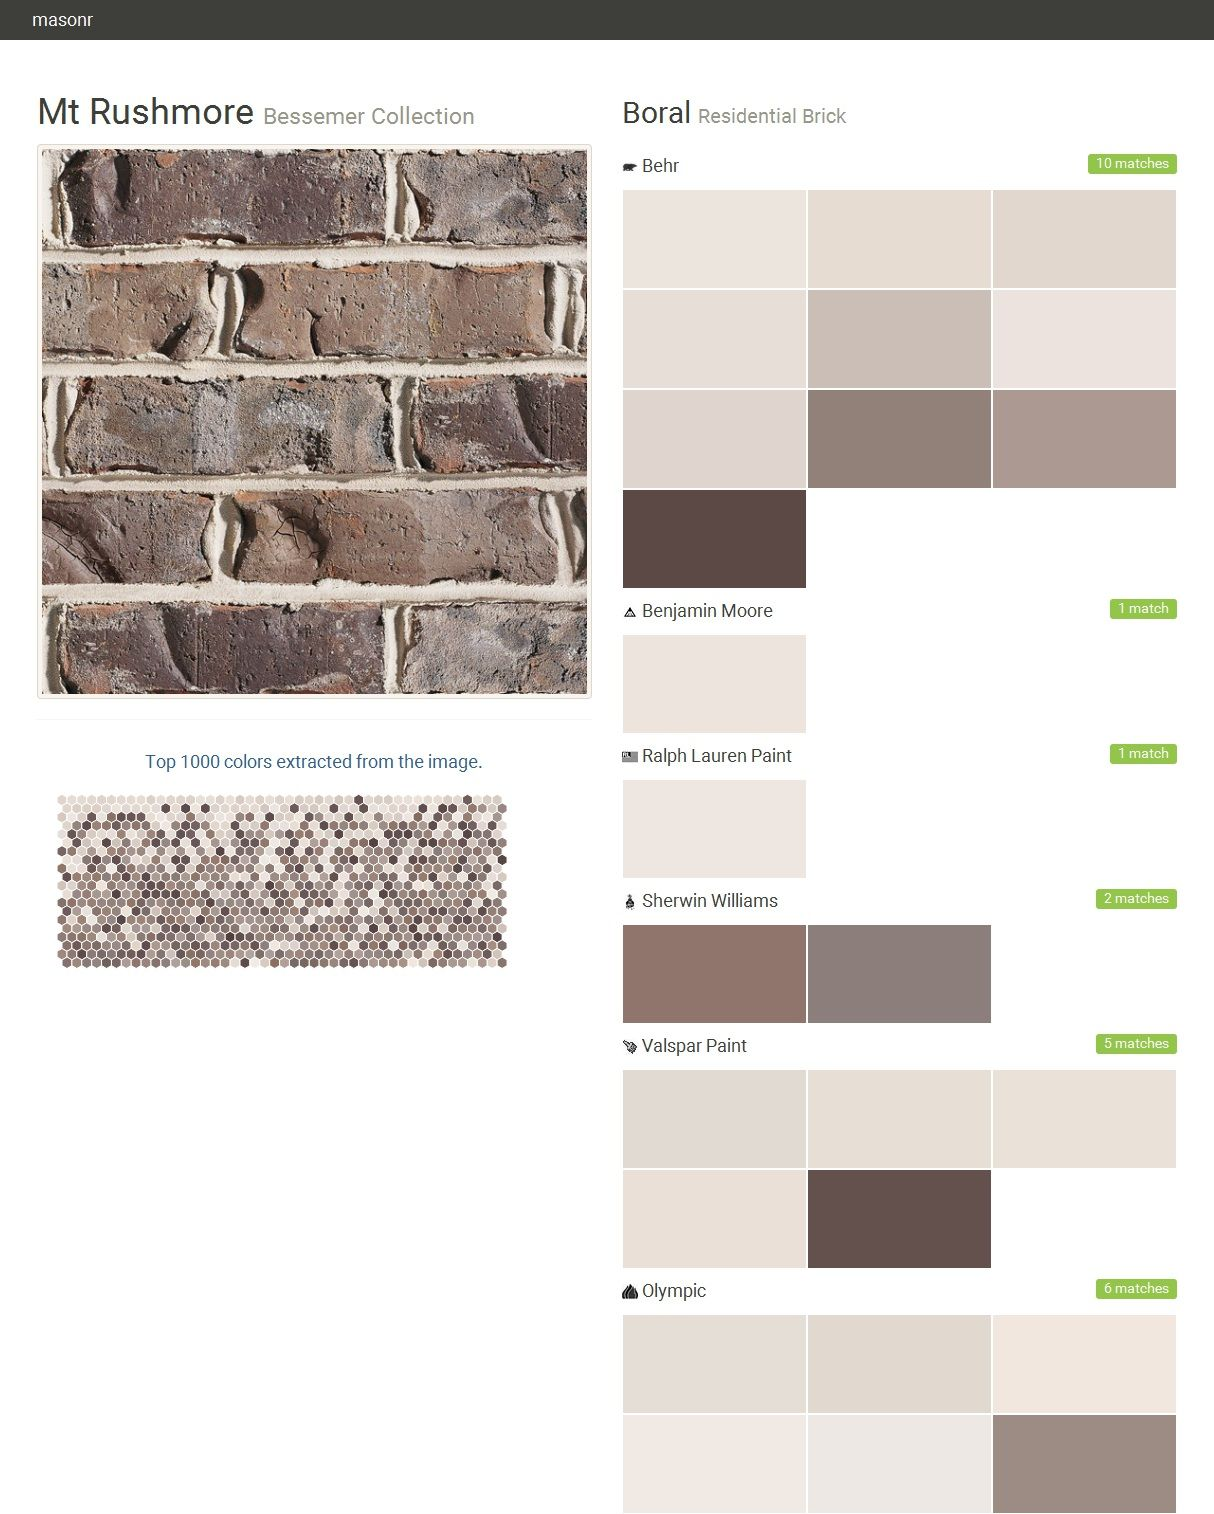 Mt rushmore bessemer collection residential brick boral behr benjamin moore ralph lauren - Breathable exterior masonry paint collection ...